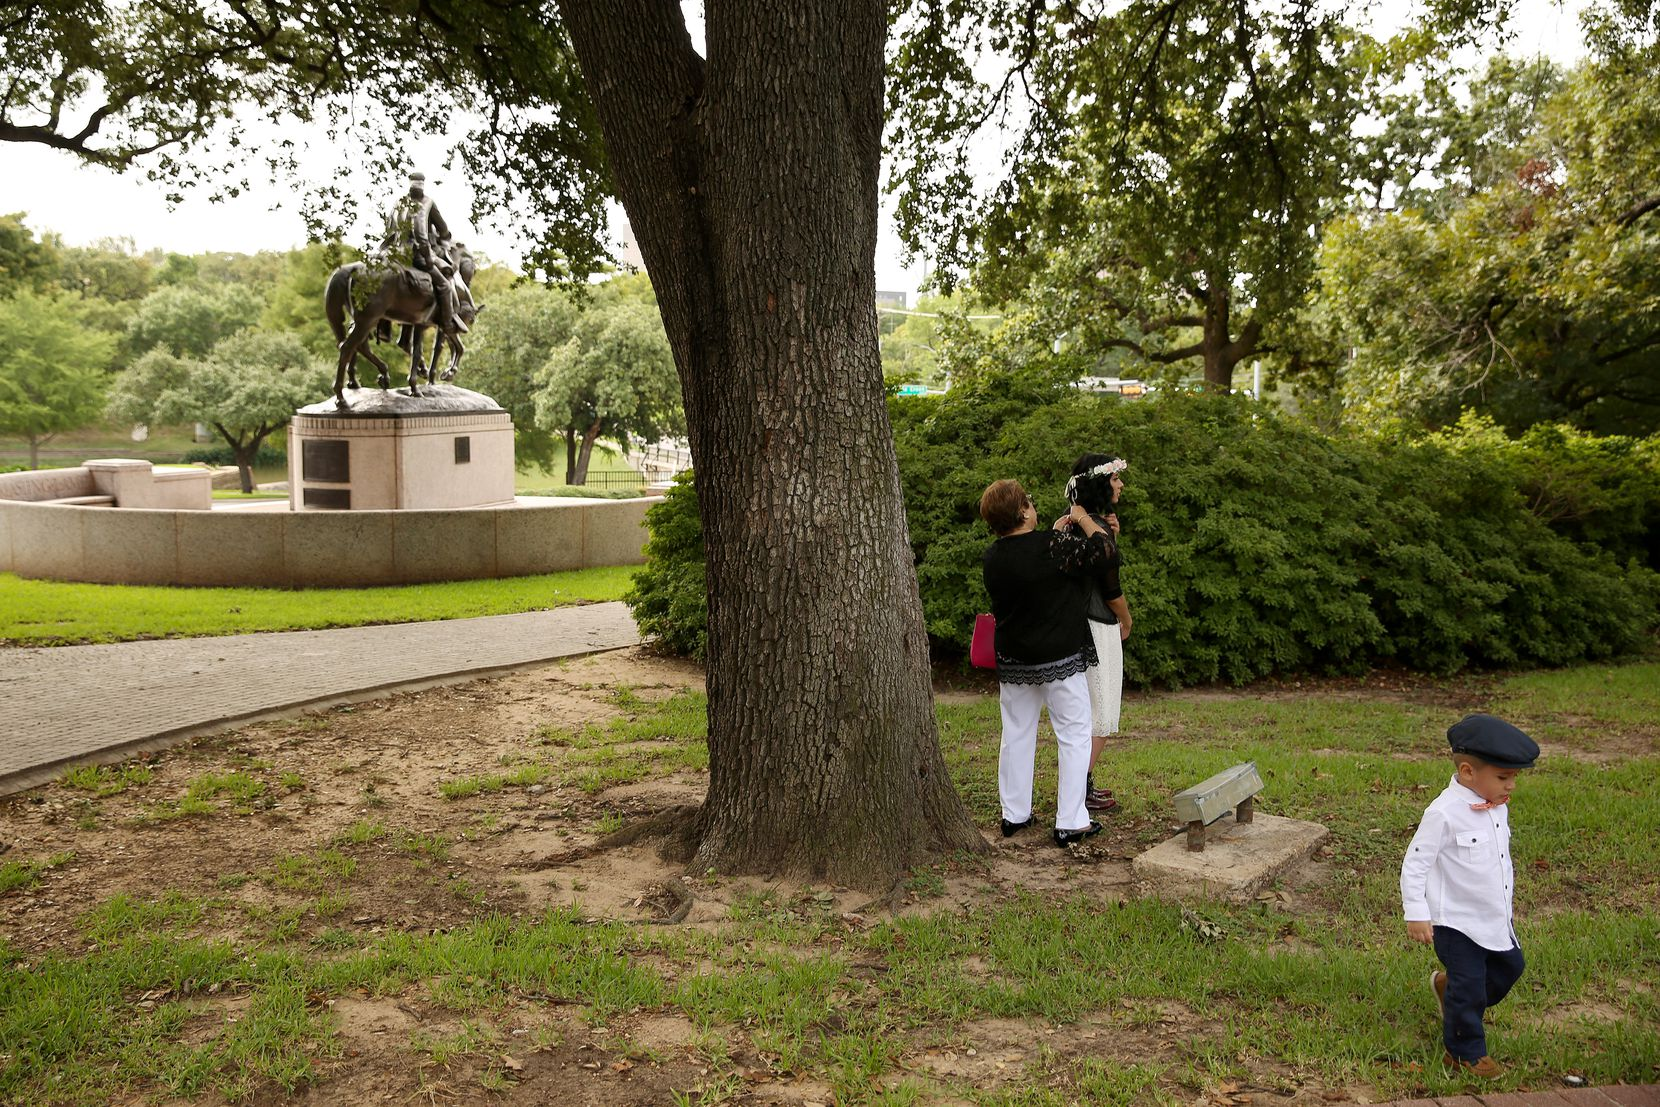 Matthew Chavez, 2, walks by as his mother Miranda Taddei (in floral headwear) gets ready for her marriage ceremony to Matthew Chavez near a statue of Confederate general Robert E. Lee at Robert E. Lee Park Aug.  16, 2017.